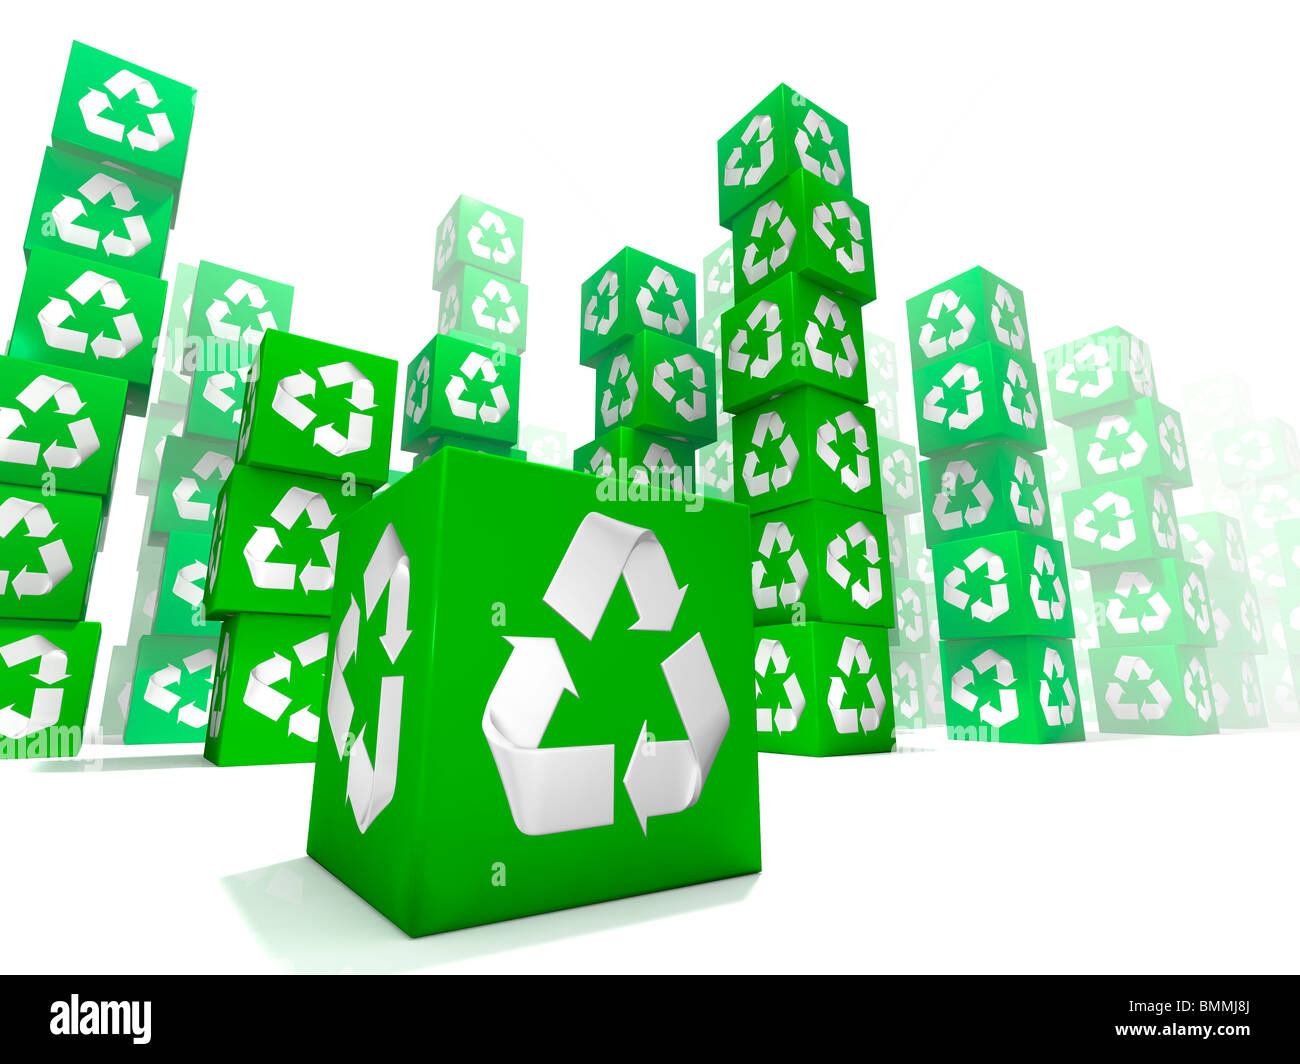 This is a many box stacking with white and green recycle sign on each face - Stock Image